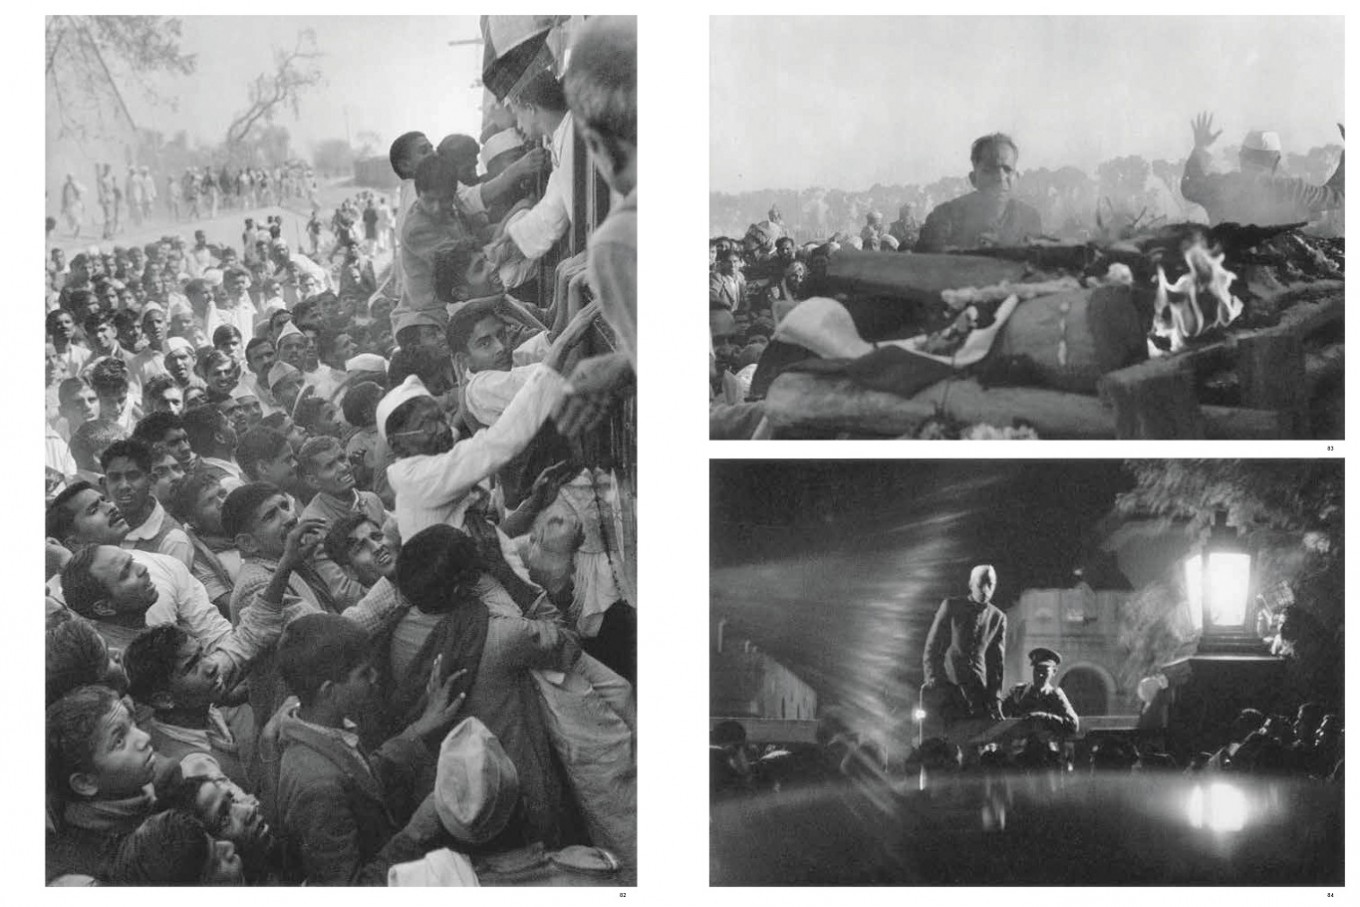 Gandhi's funeral, Delhi, India 1948, from Images a la Sauvette (Verve 1952) p 99-100.